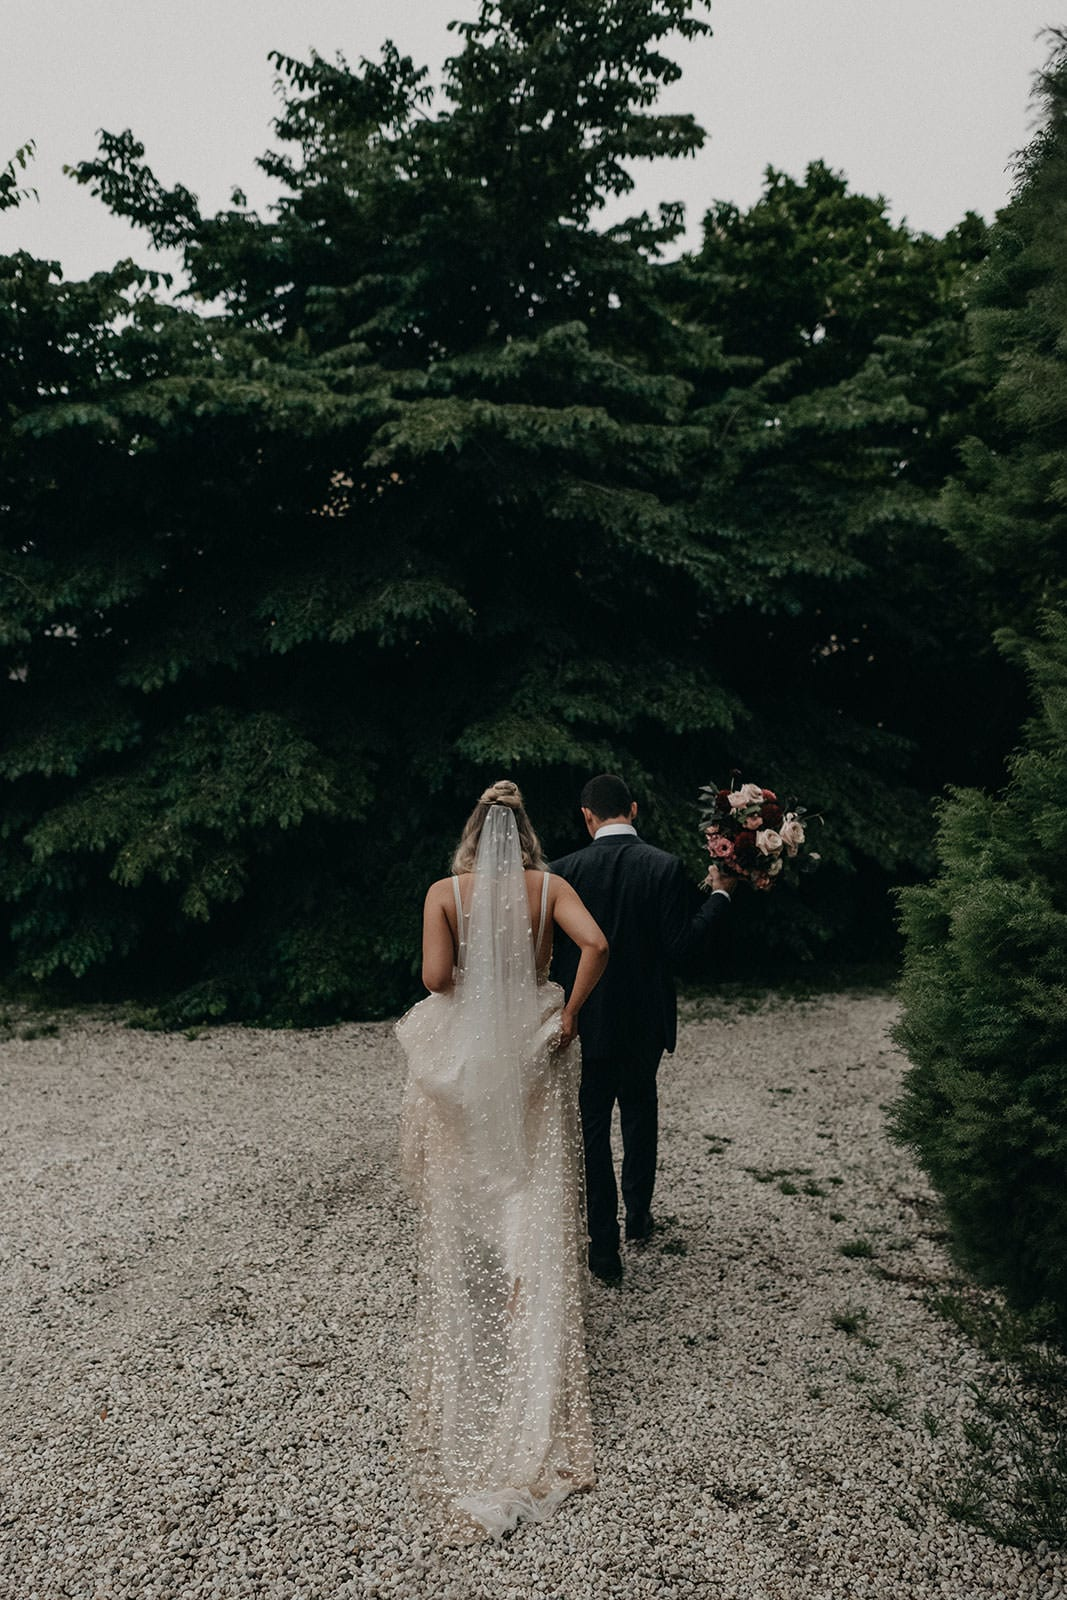 Blonde bride wearing Grace Loves Lace Menha Gown and matching veil walking with groom